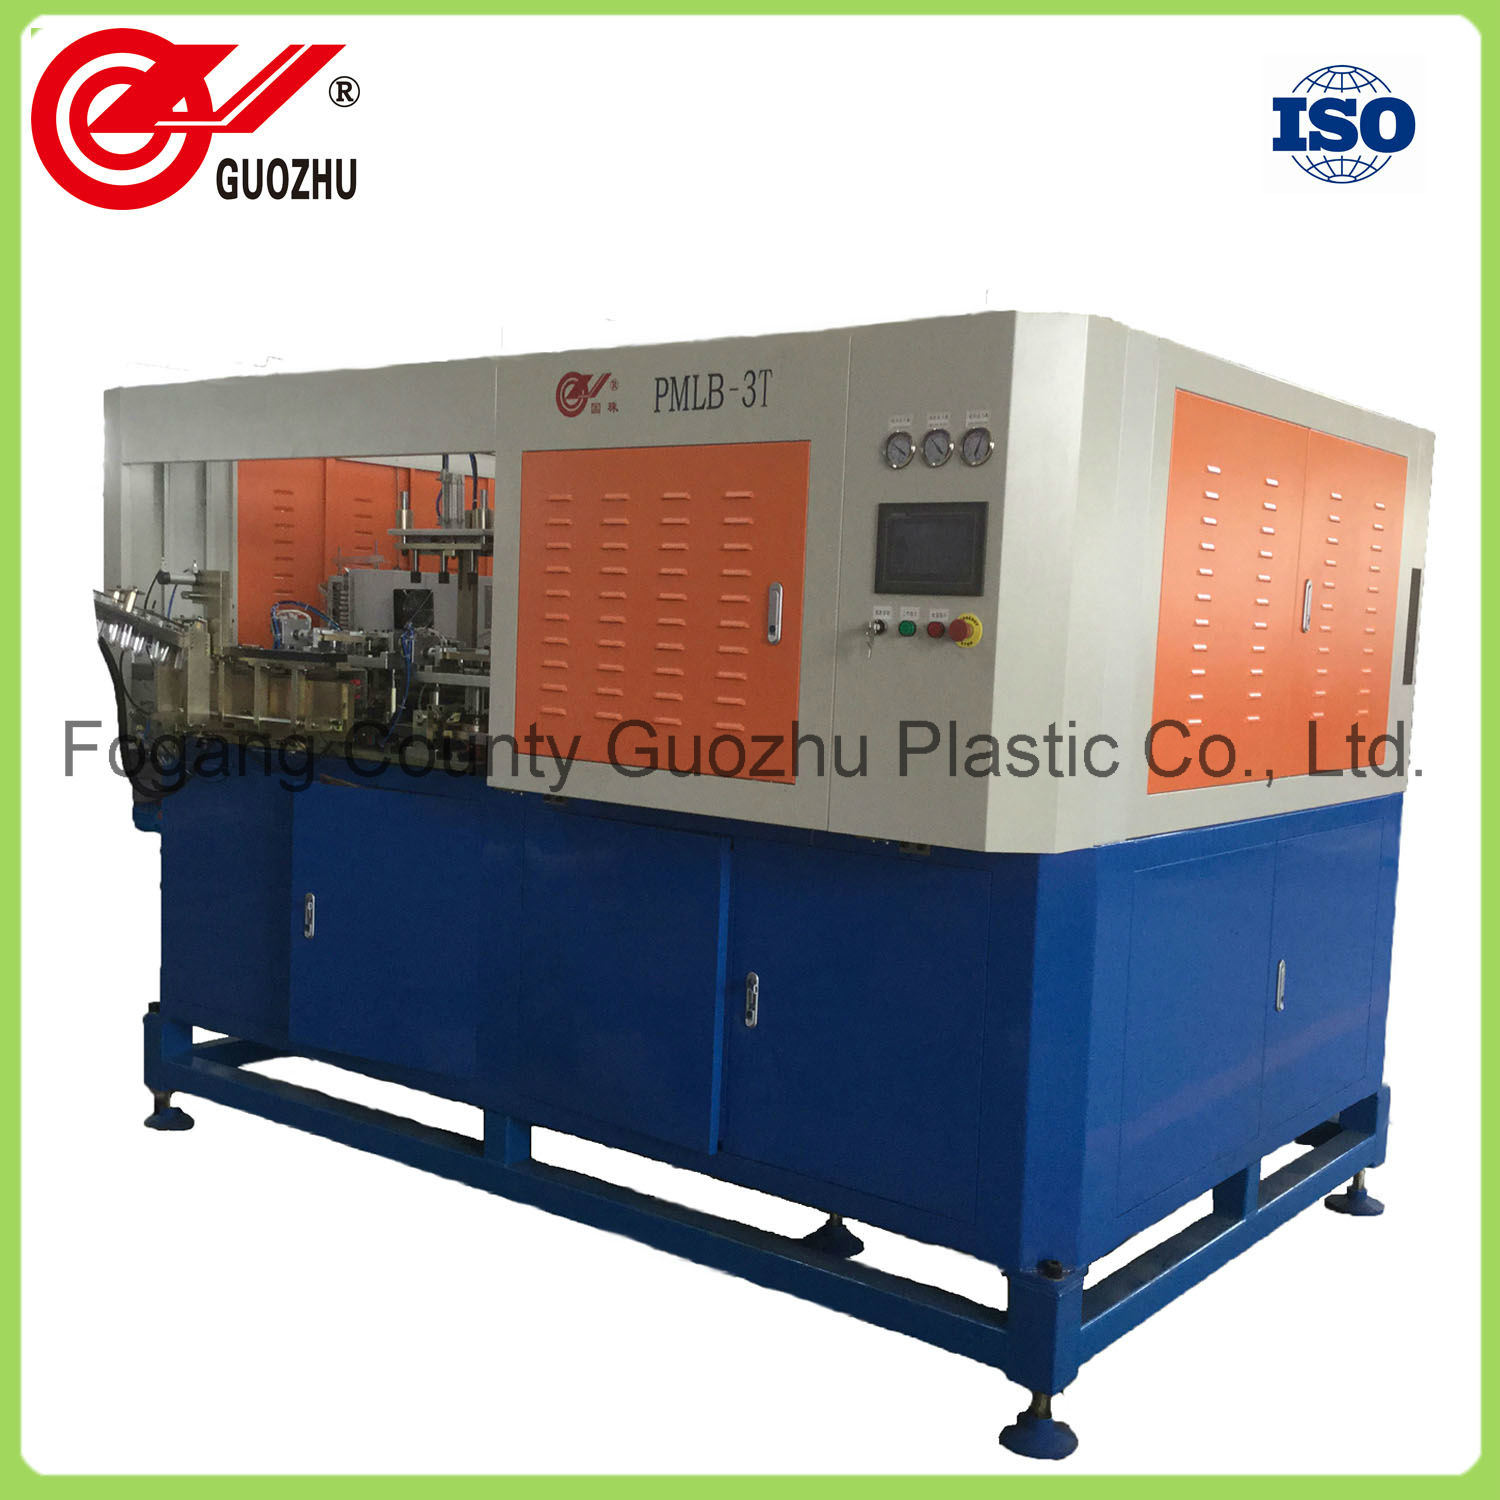 Continuous Heating Linear Bottle Blowing Machine